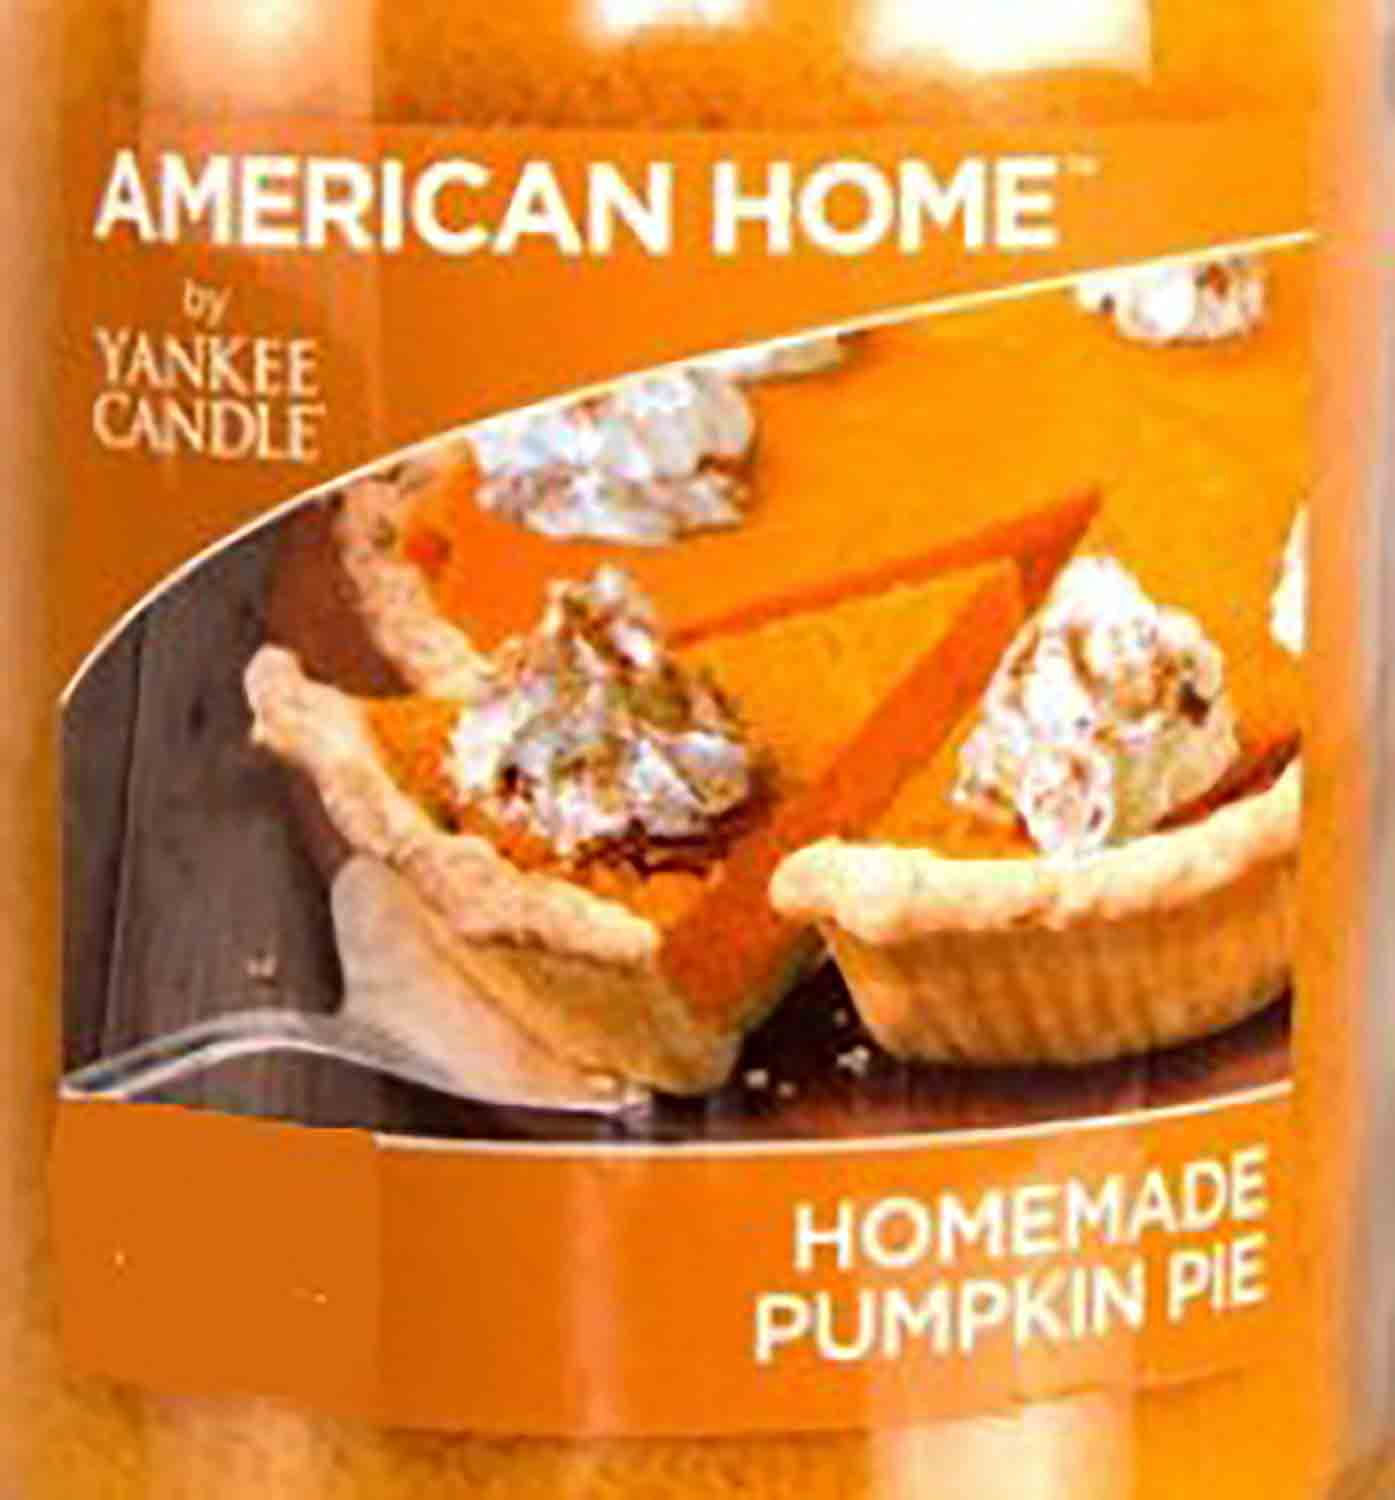 Crumble vosk Yankee Candle Homemade Pumpkin Pie 22g